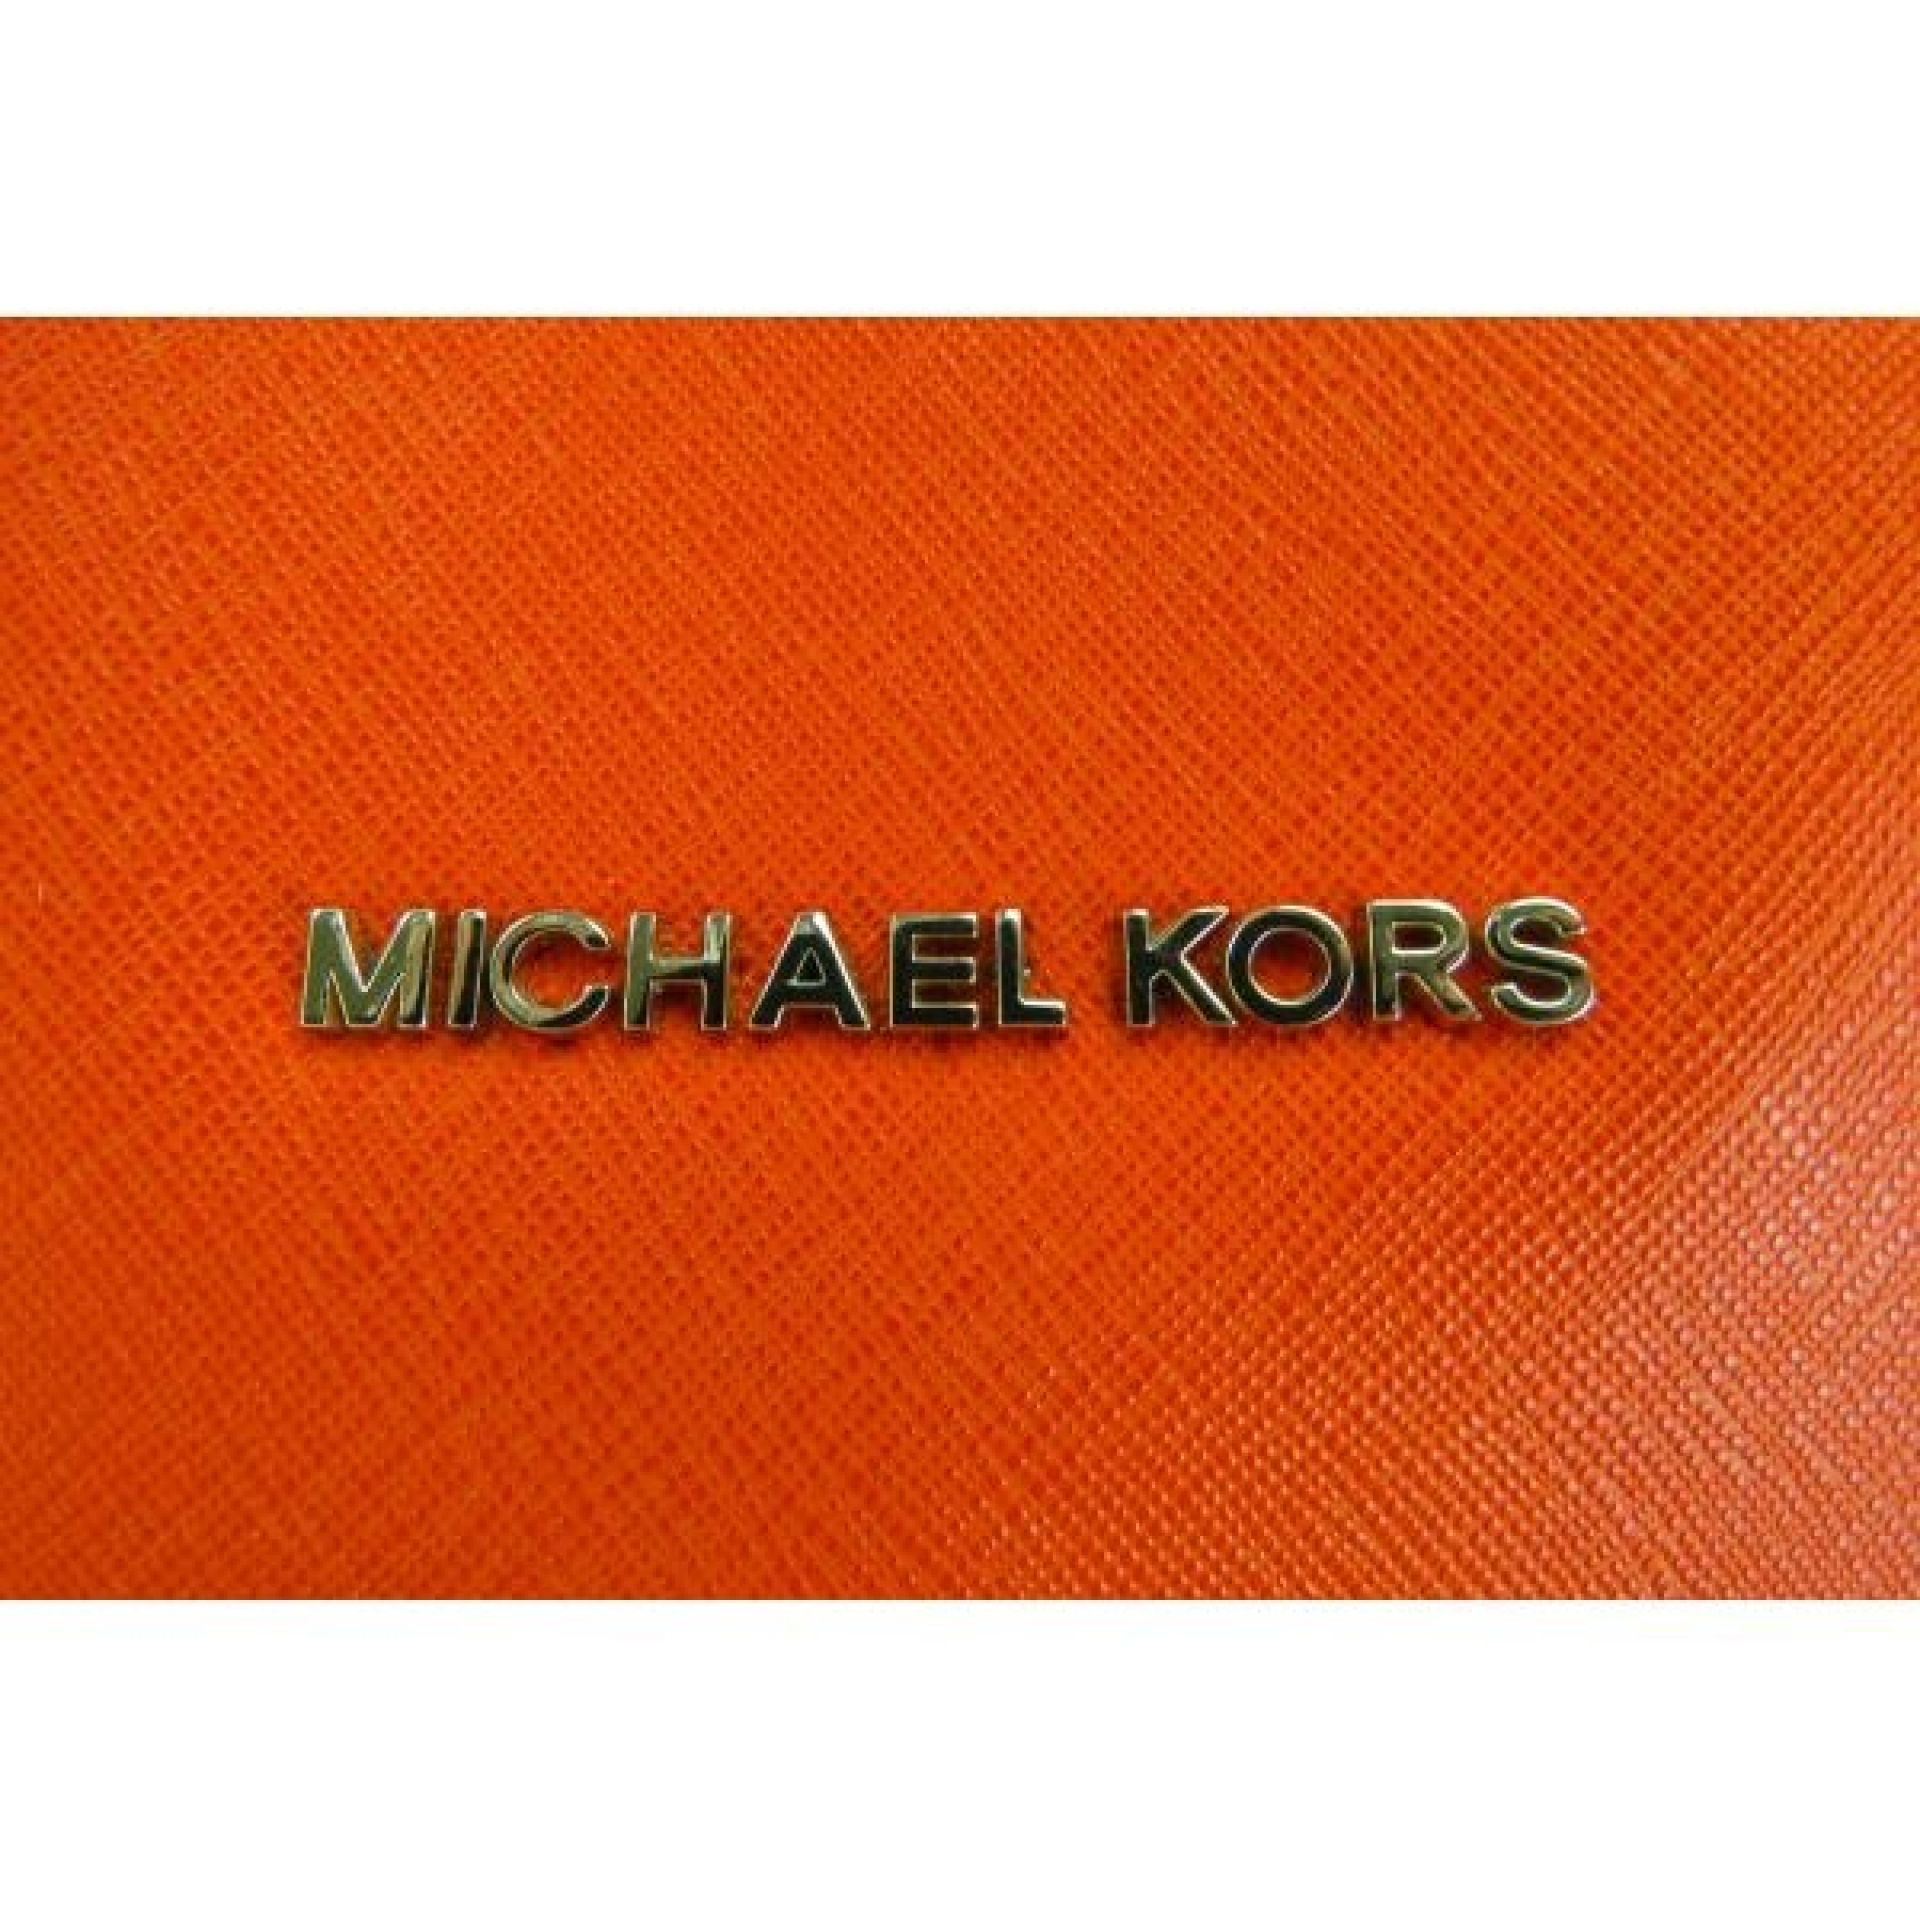 MICHAEL Michael Kors Orange Saffiano Leather Jet Set East West Tote Bag